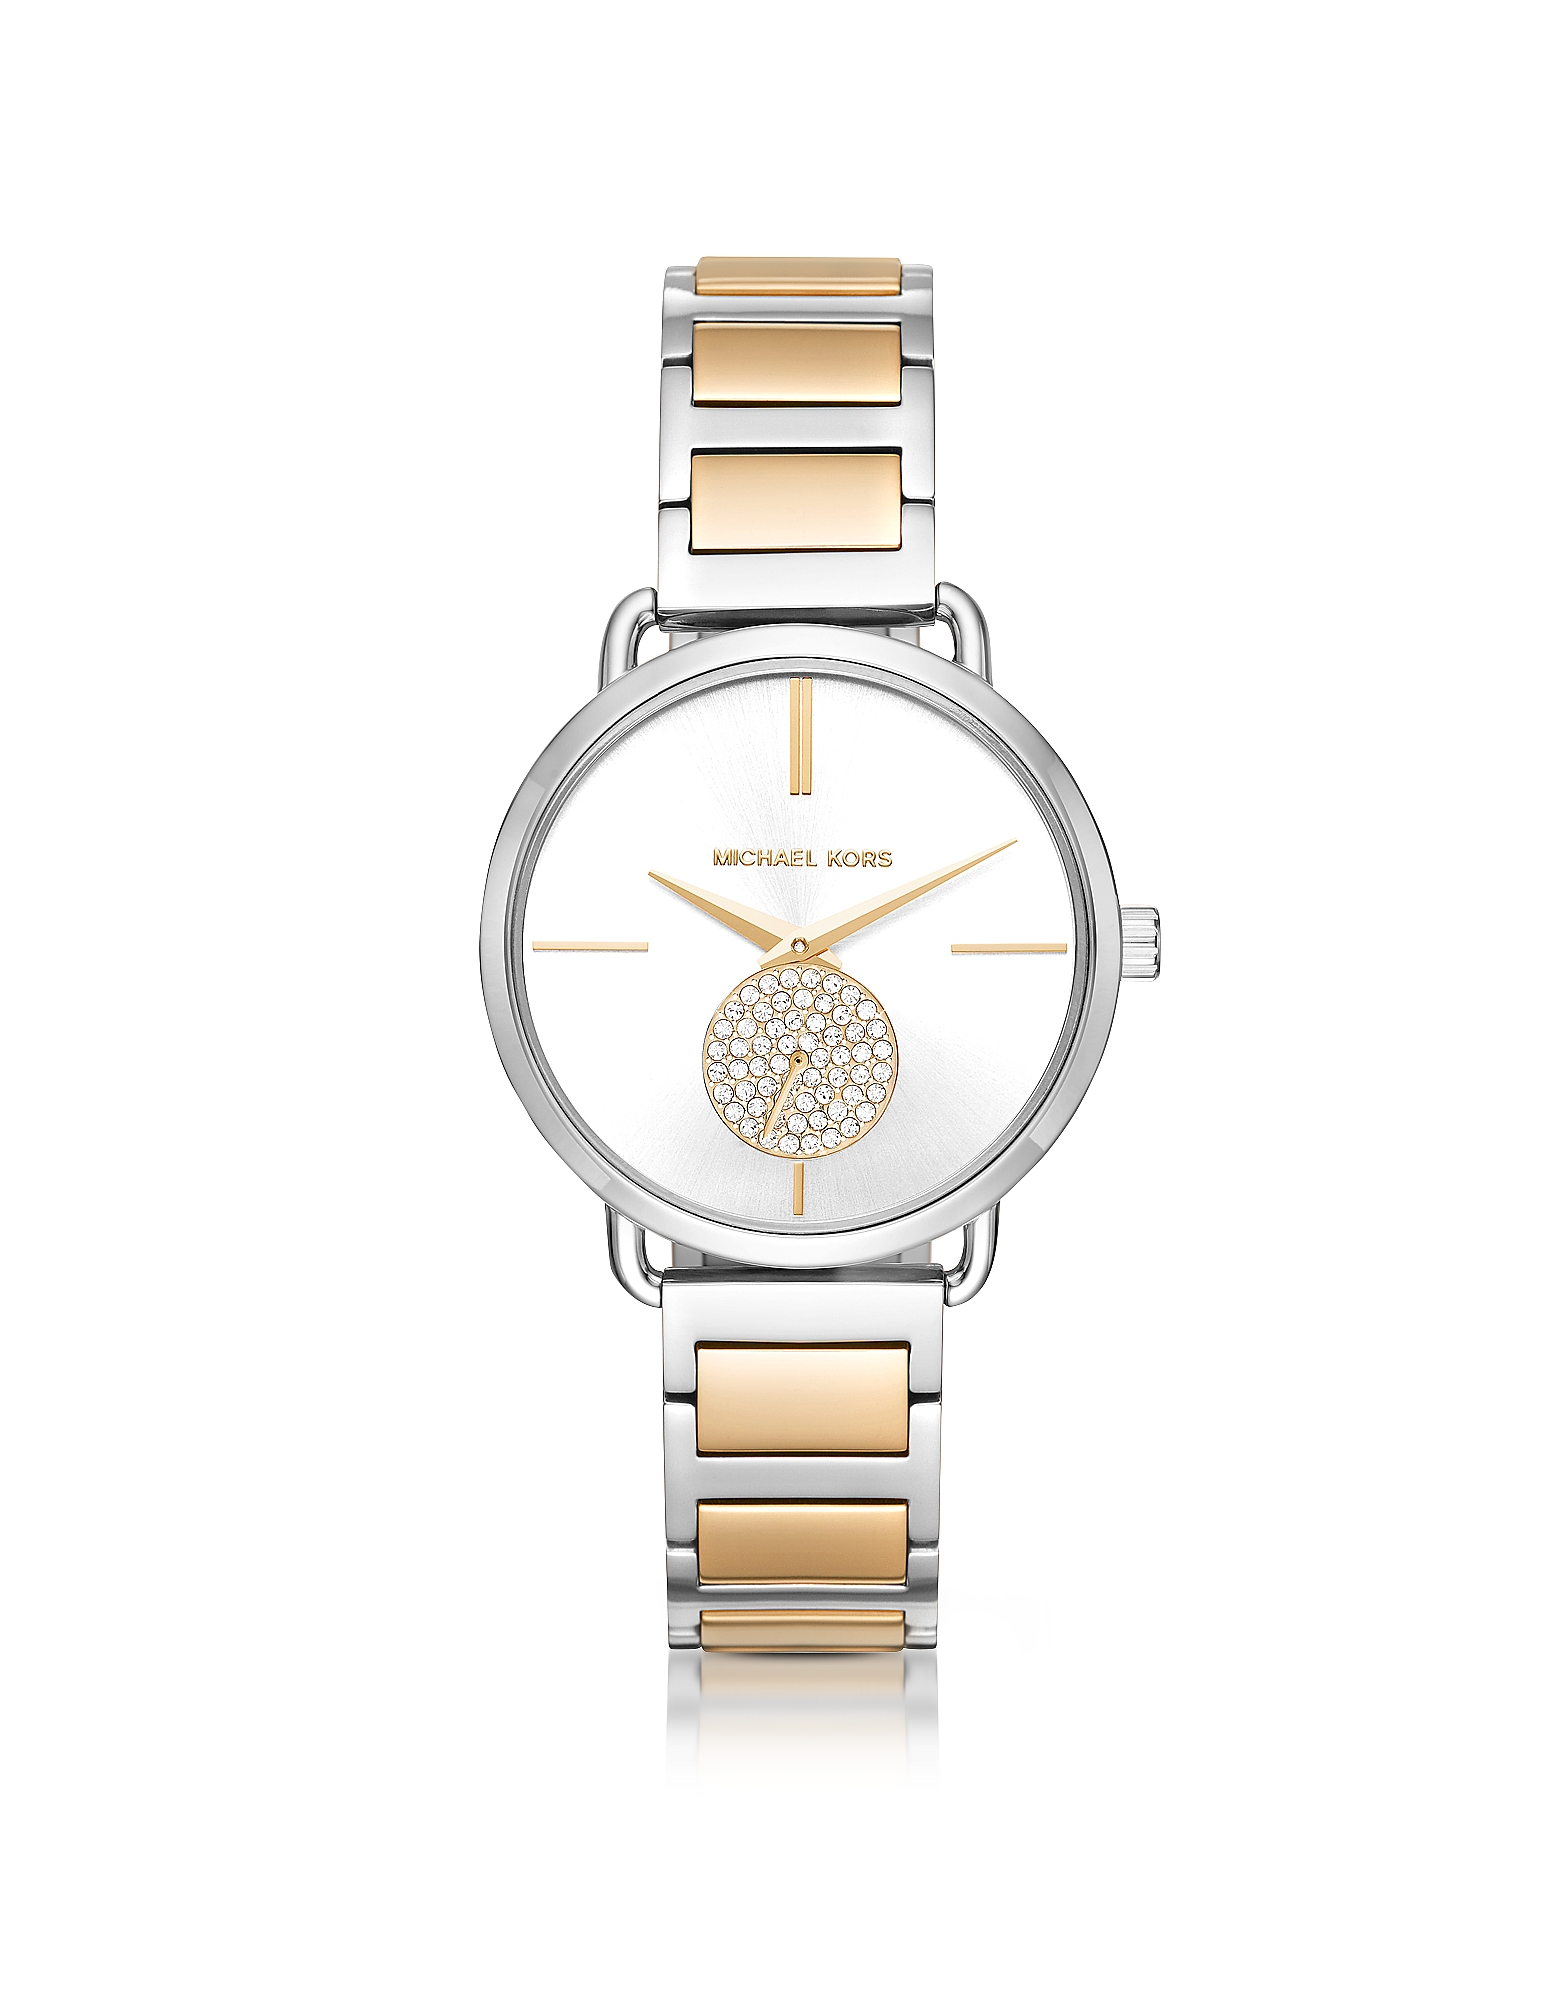 Michael Kors Women's Watches, Portia Two-Tone Stainless Steel Women's Watch